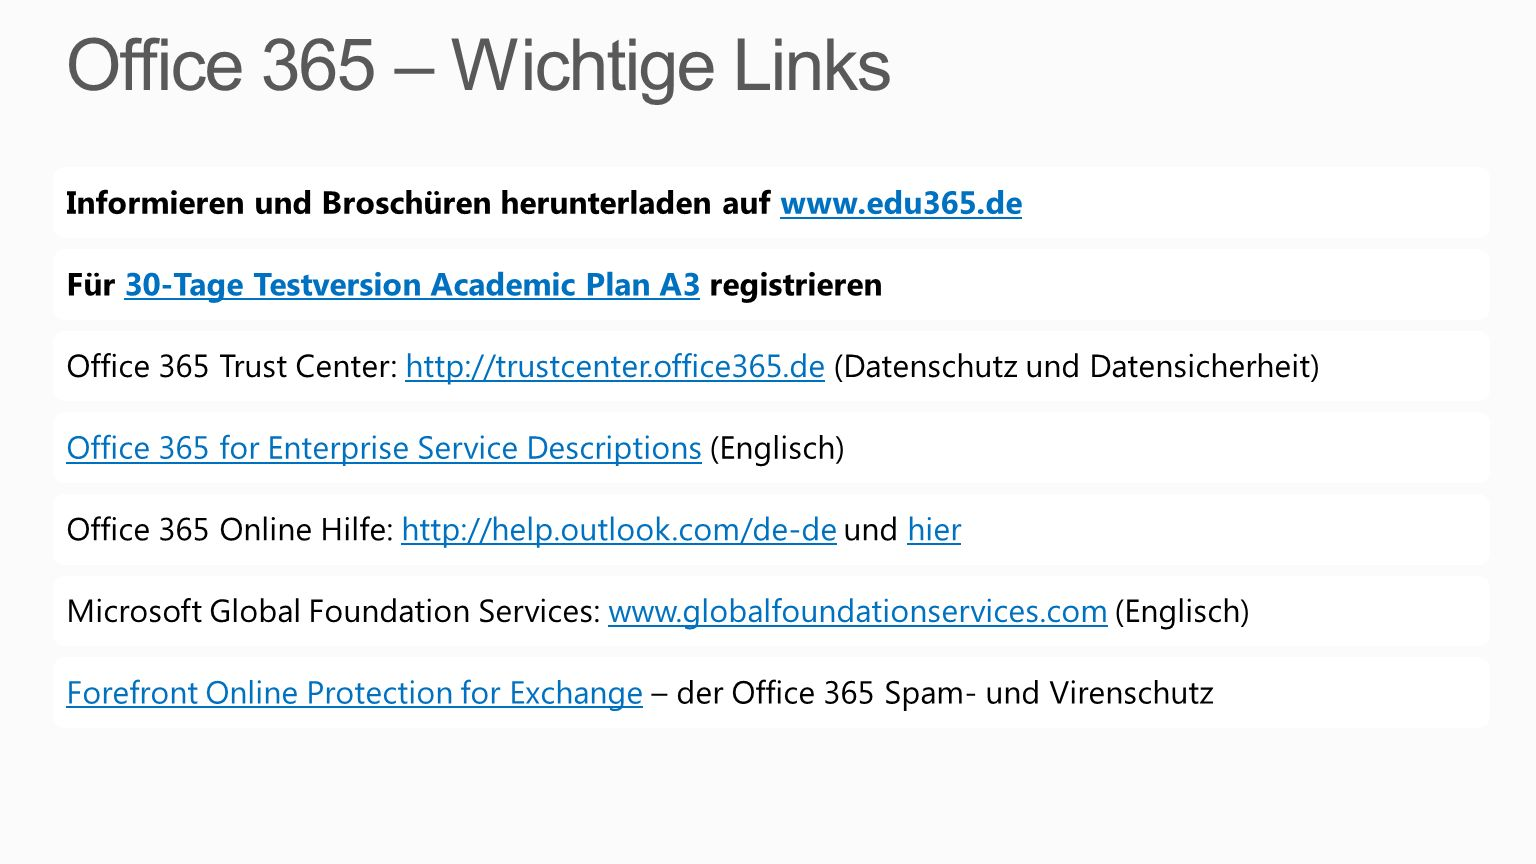 Office 365 – Wichtige Links